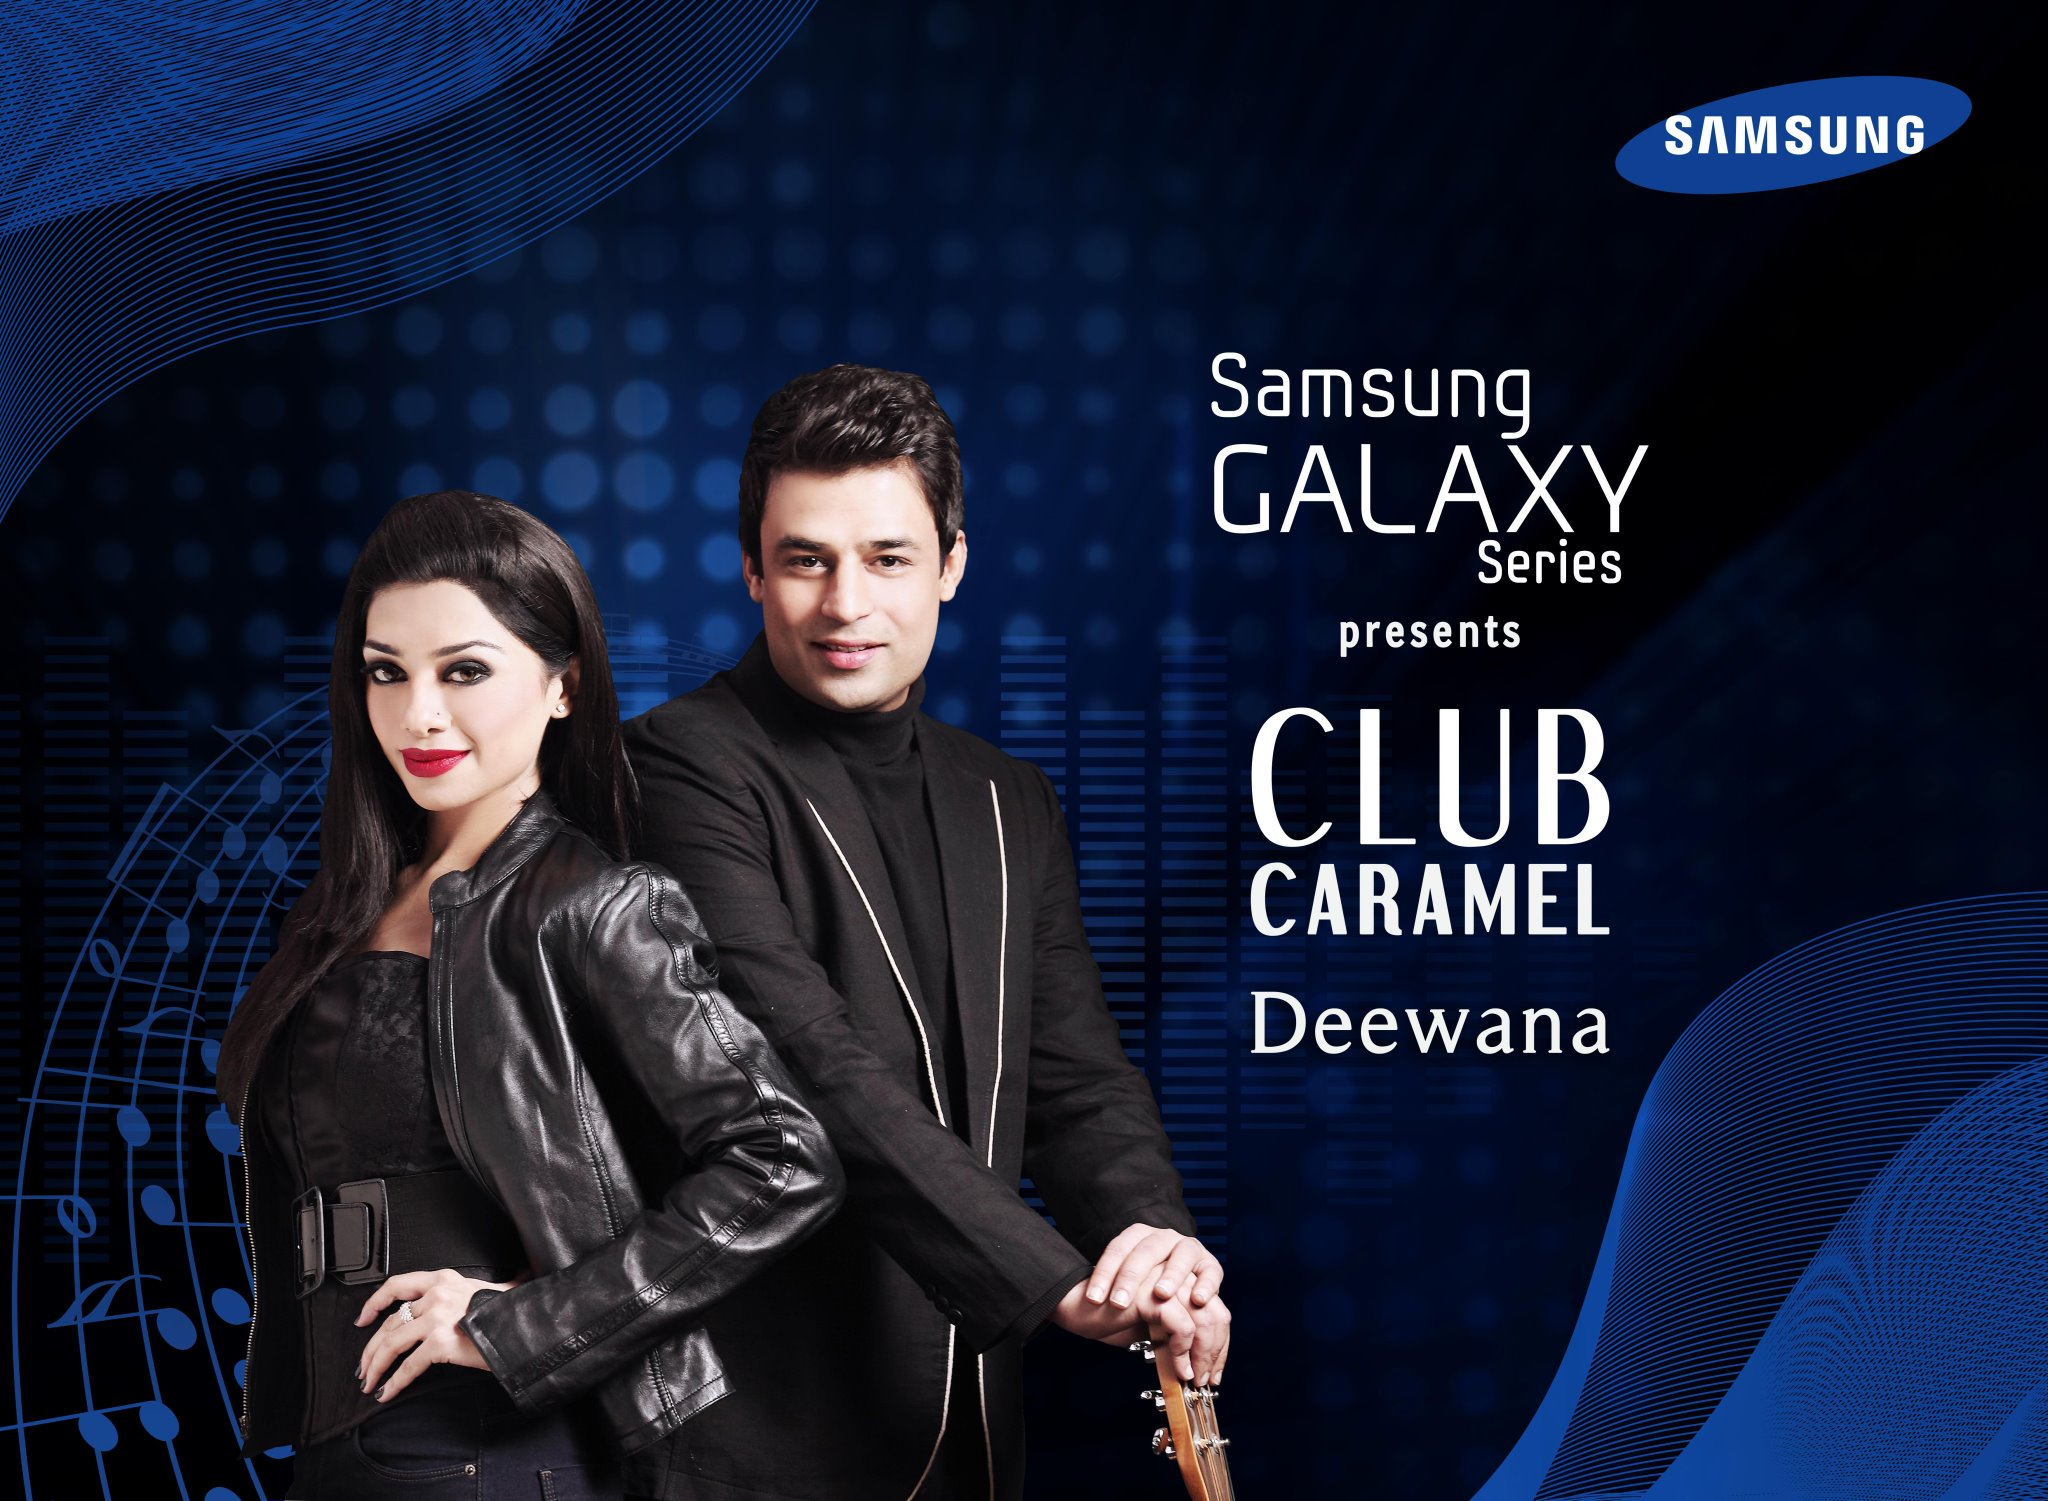 Club Caramel song Deewana Sponsored by Samsung